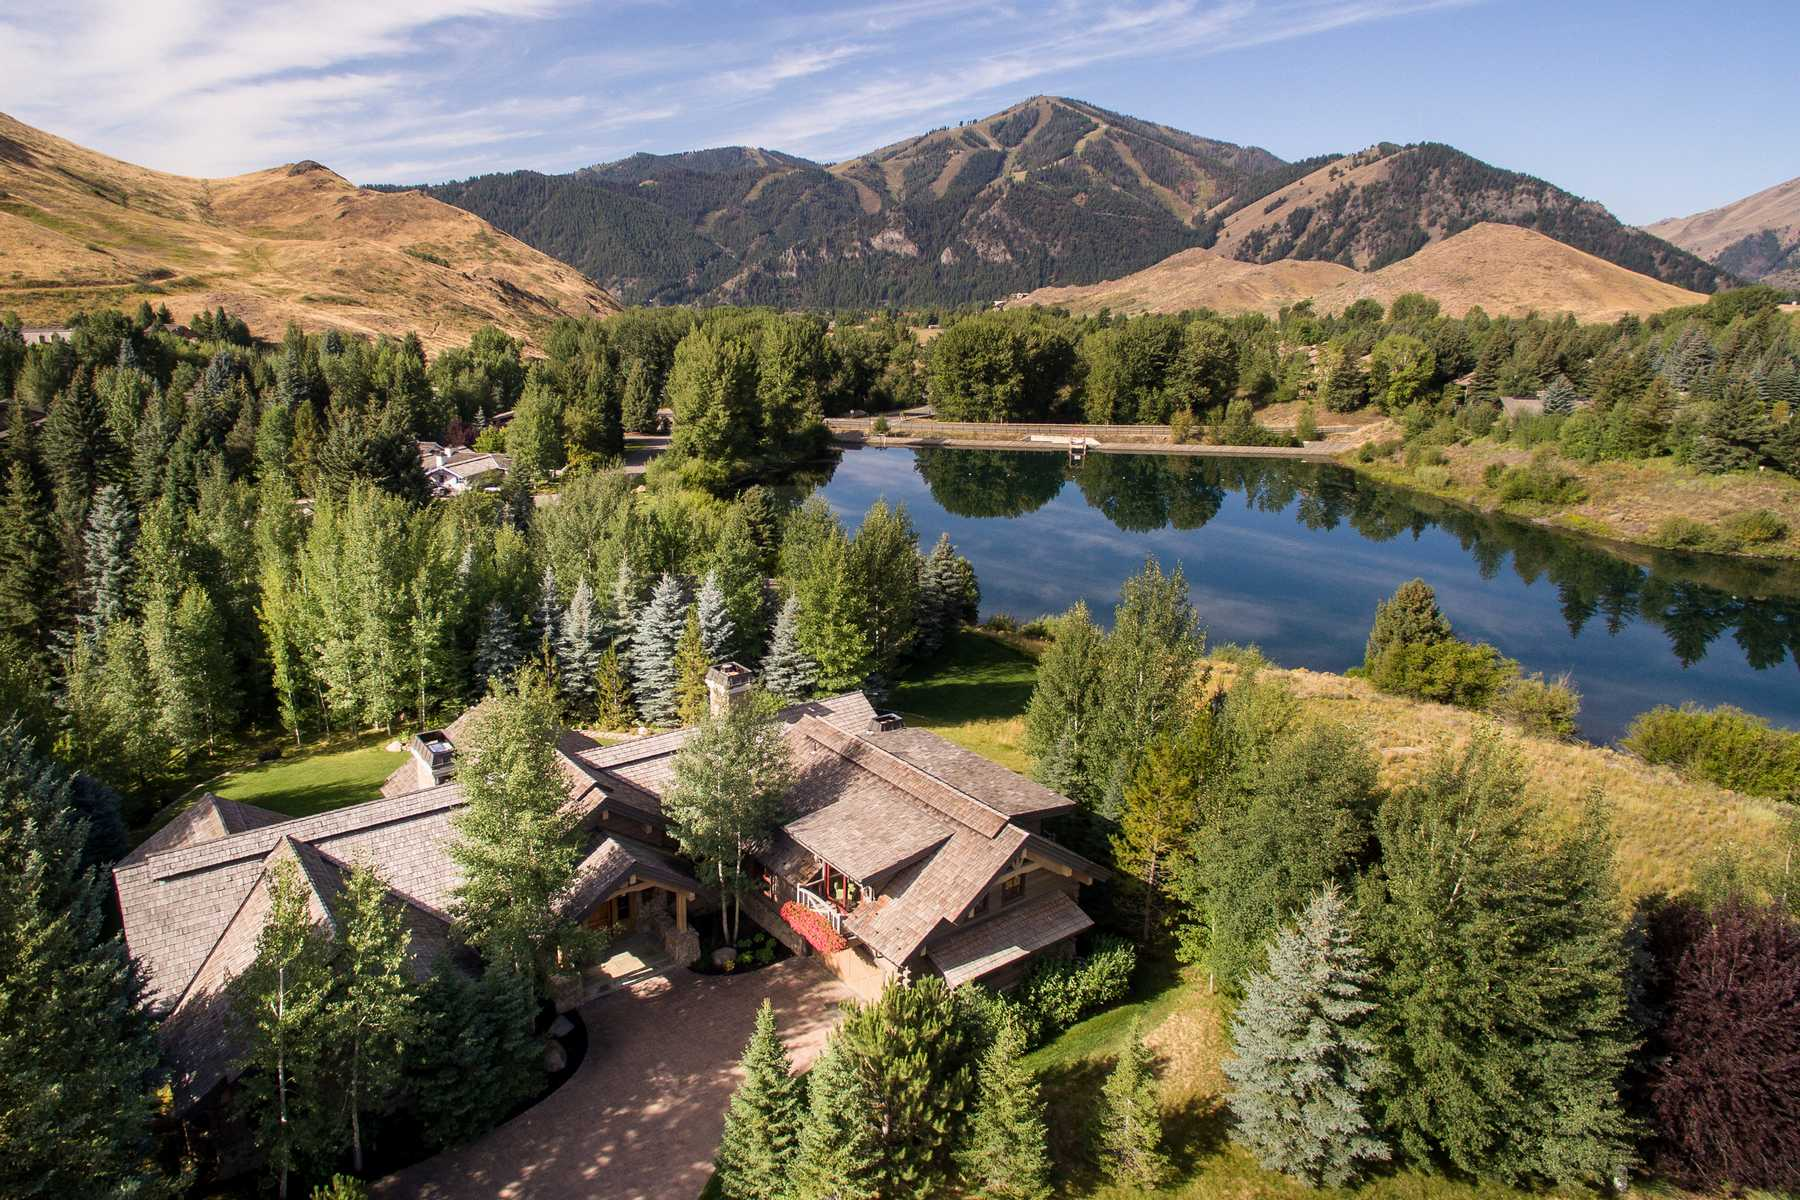 Single Family Home for Sale at Overlooking the Lake Sun Valley, 83353 United States